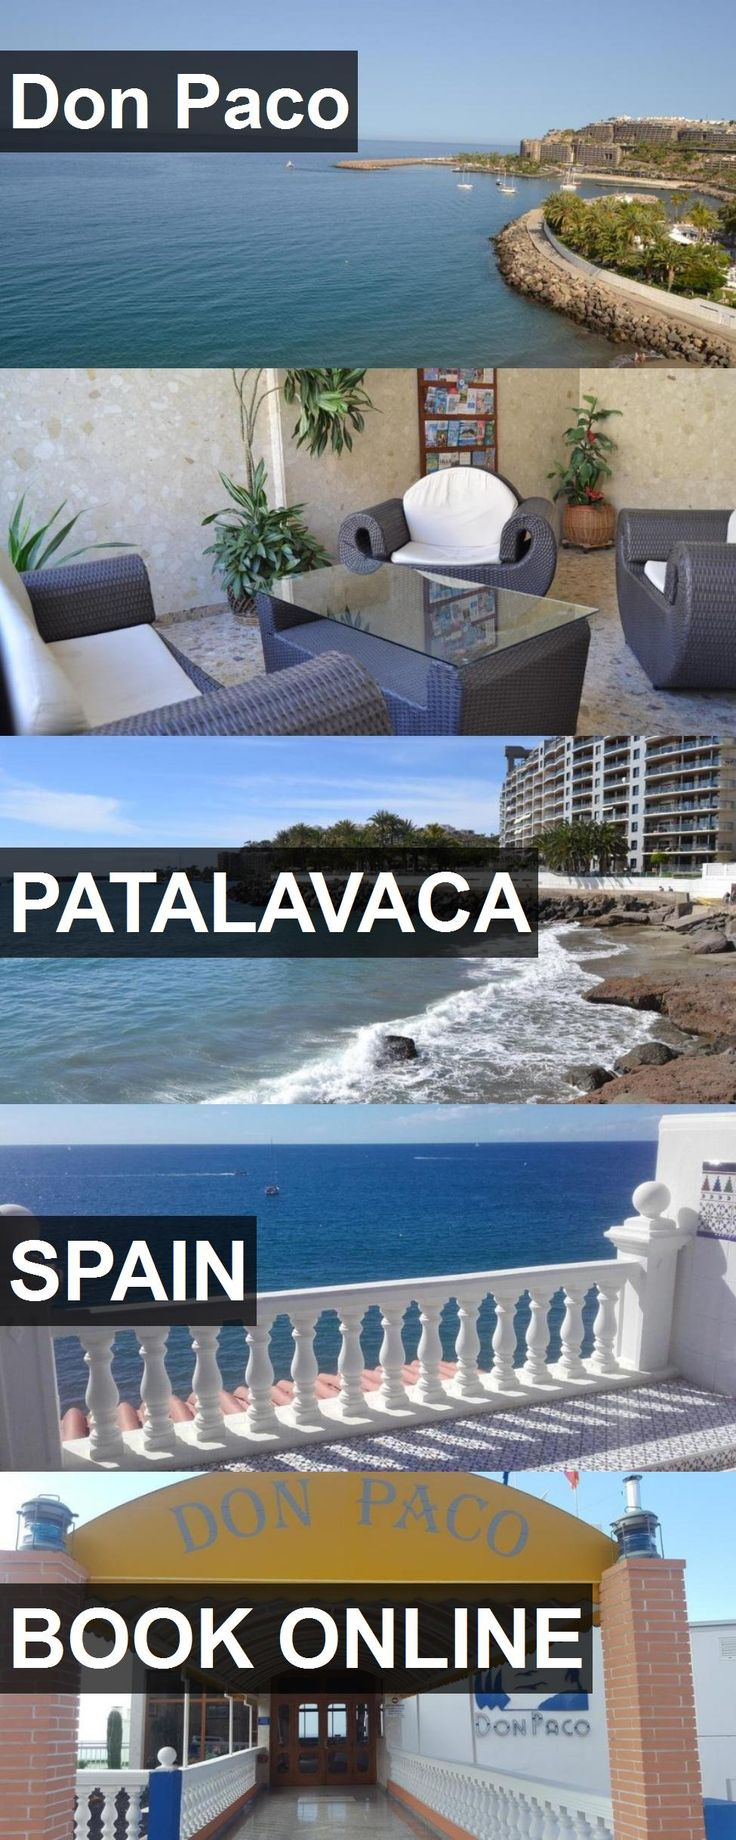 Hotel Don Paco in Patalavaca, Spain. For more information, photos, reviews and best prices please follow the link. #Spain #Patalavaca #travel #vacation #hotel